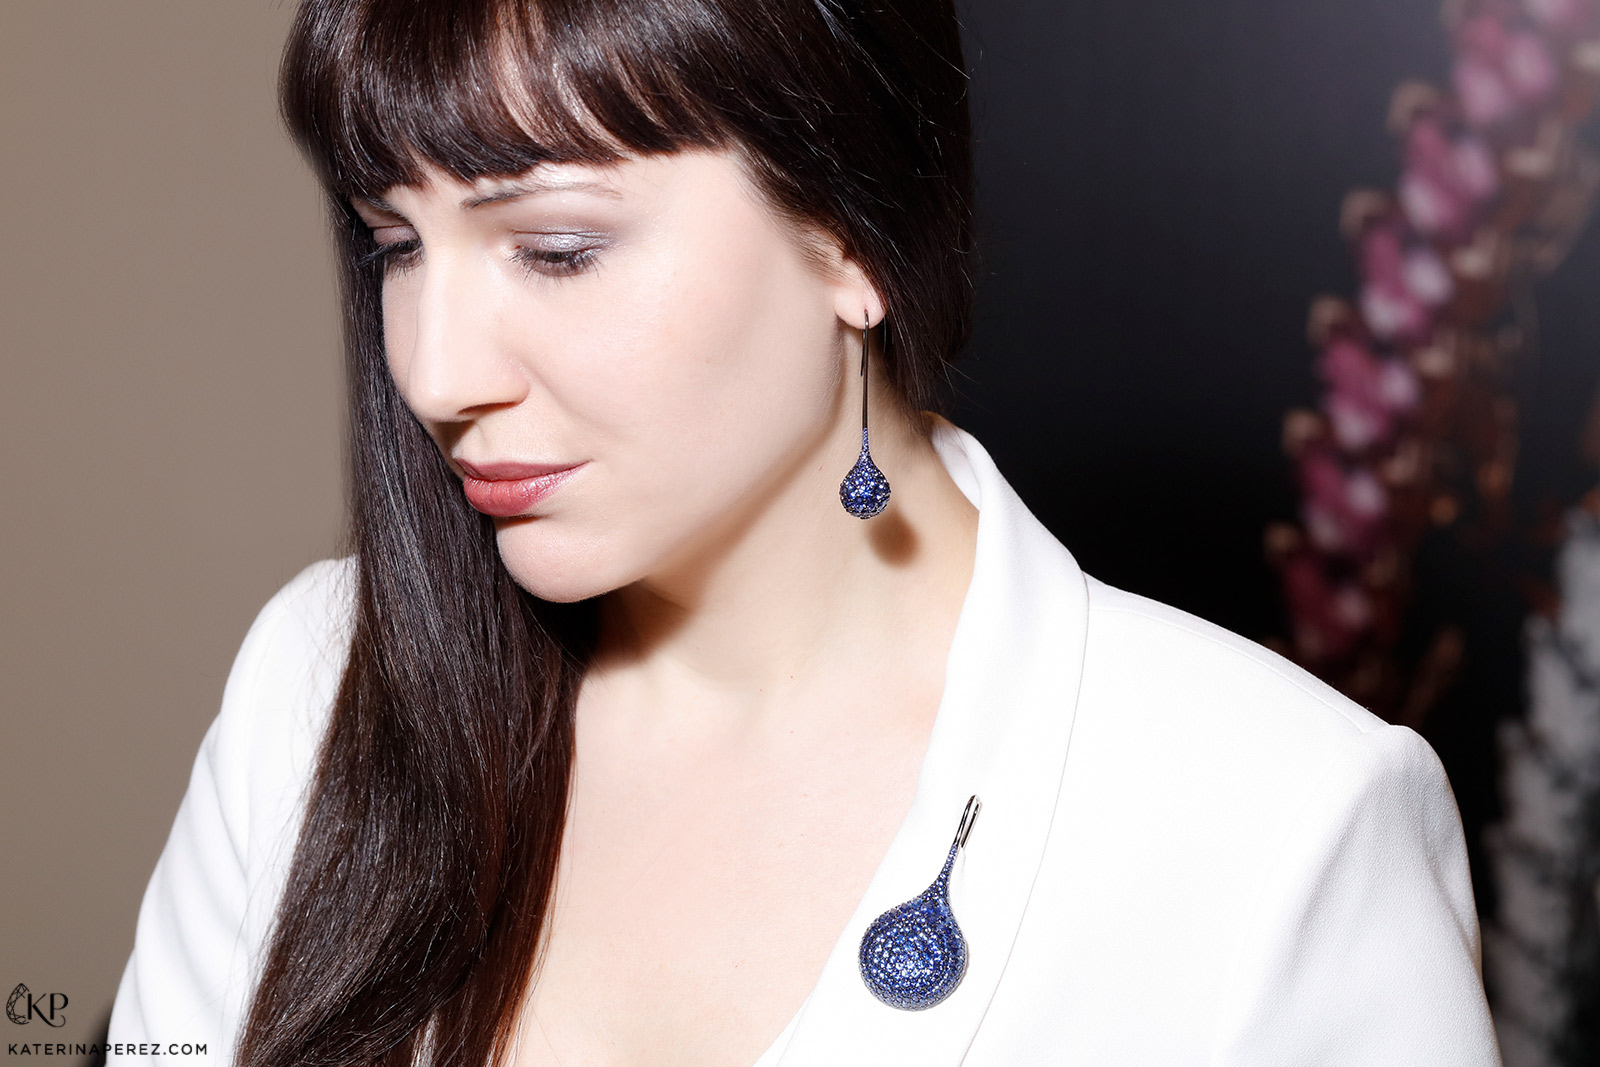 Baenteli earrings and a brooch paved with blue sapphires